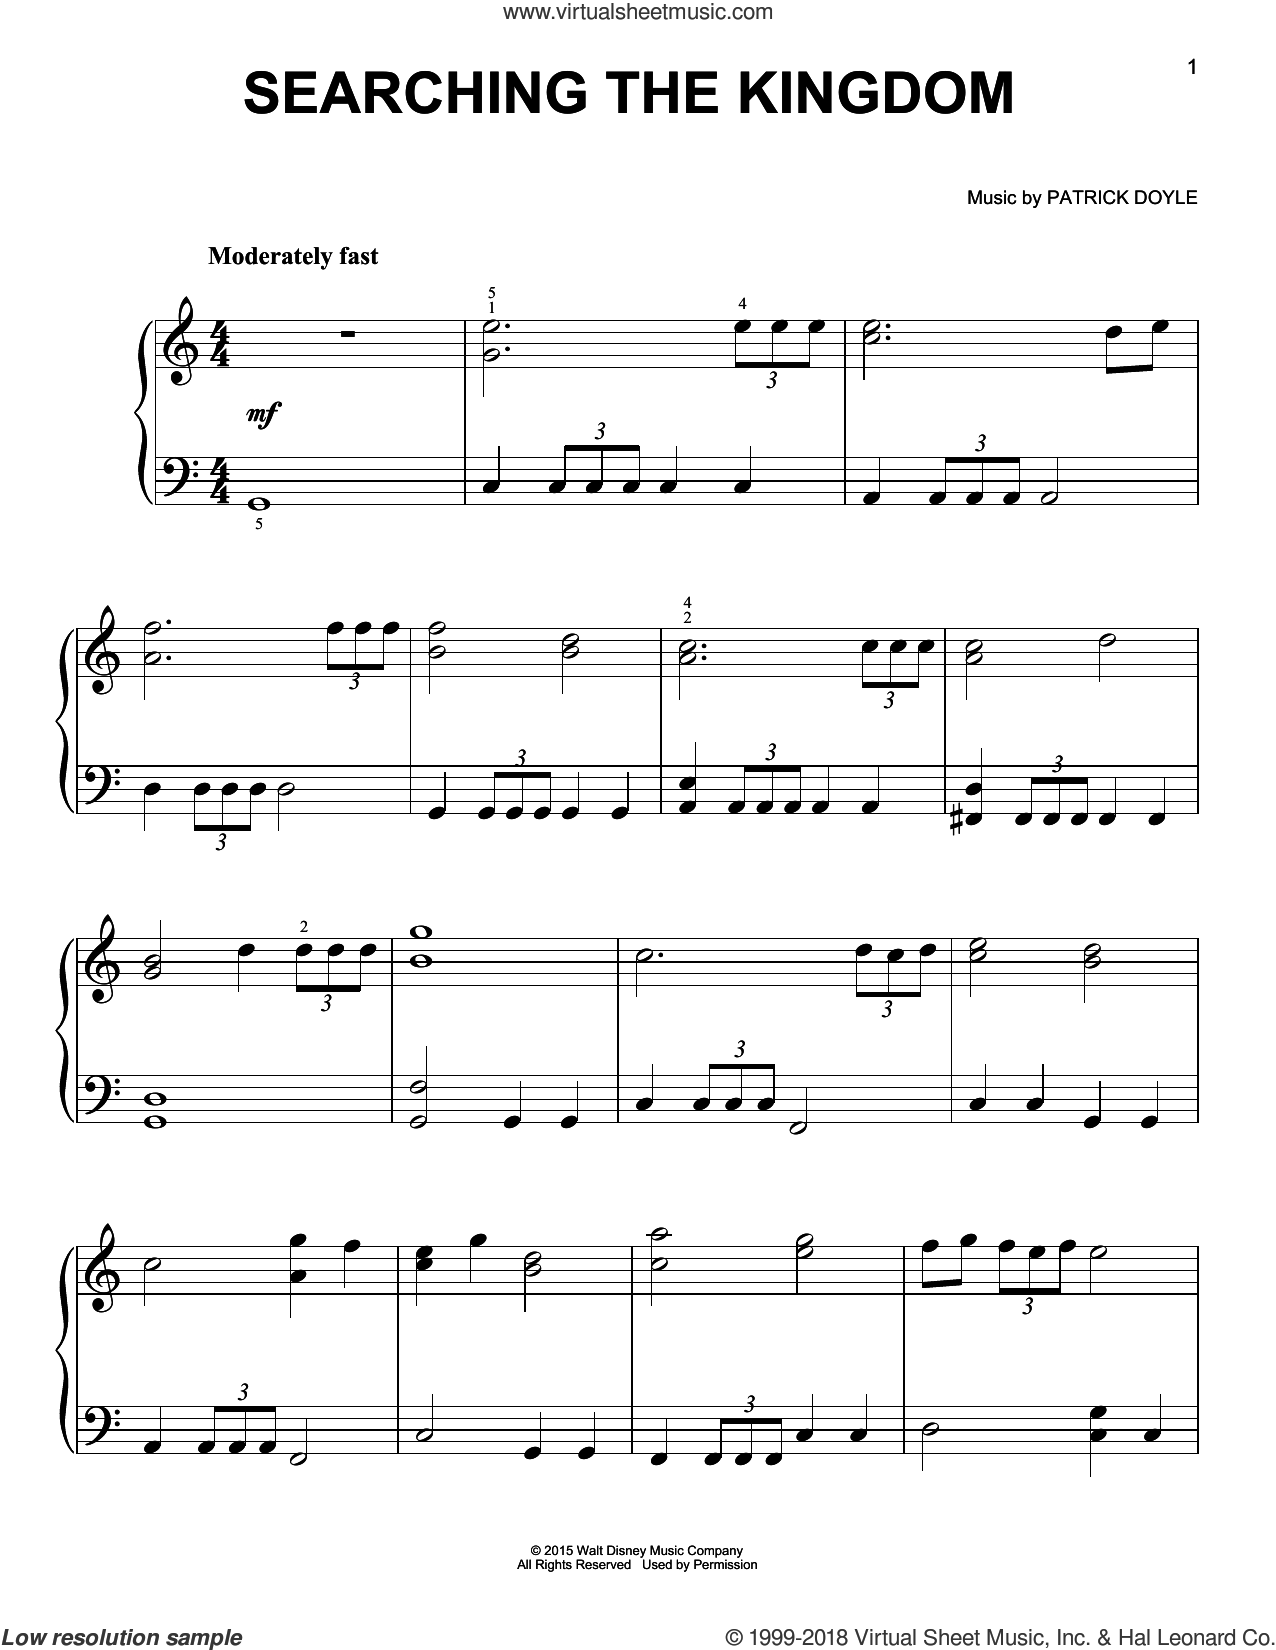 Searching The Kingdom sheet music for piano solo by Patrick Doyle, easy skill level